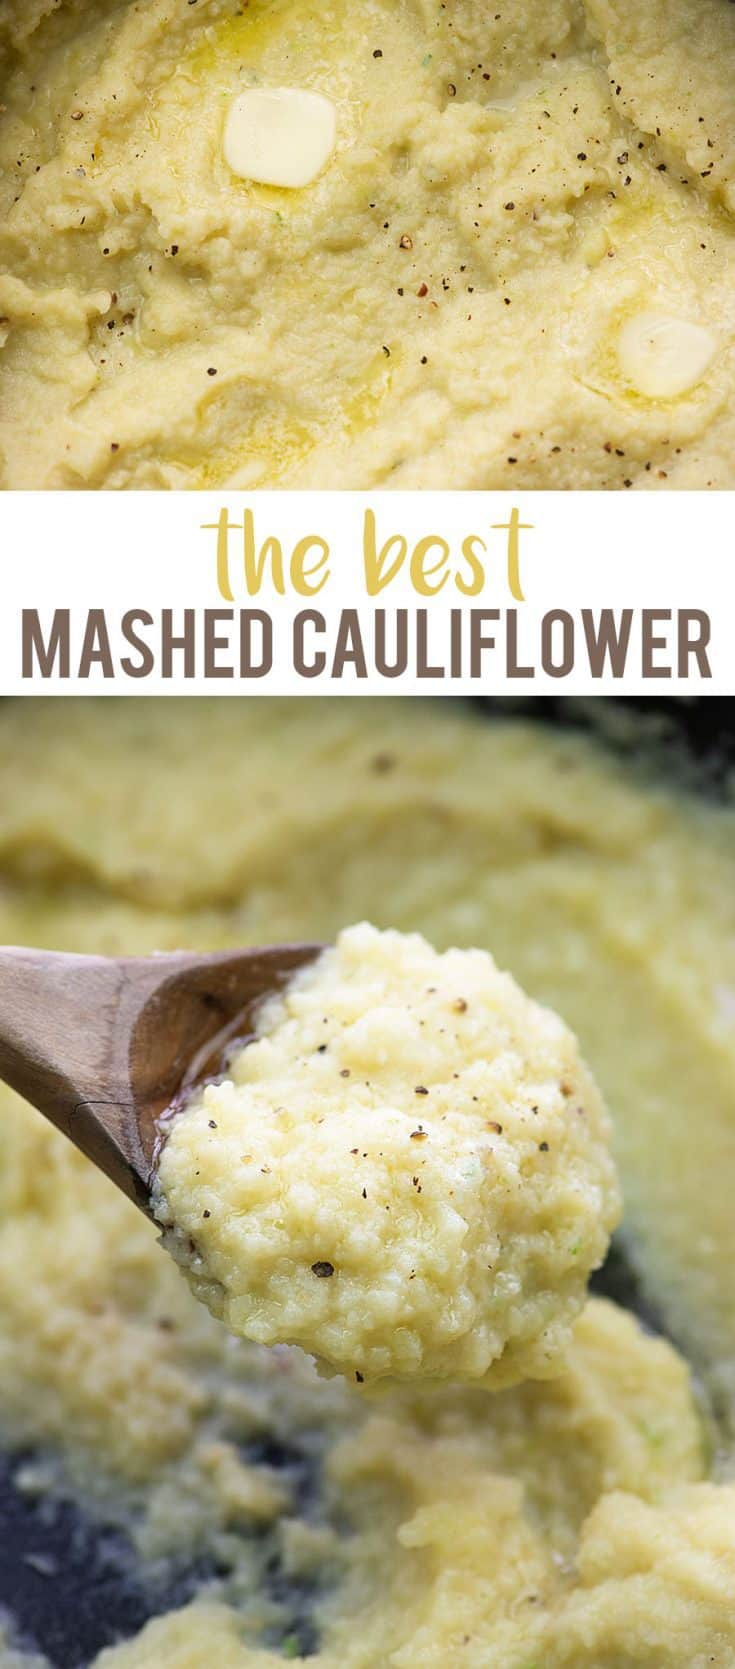 The BEST mashed cauliflower - so creamy and easy to whip up! #lowcarb #keto #cauliflower